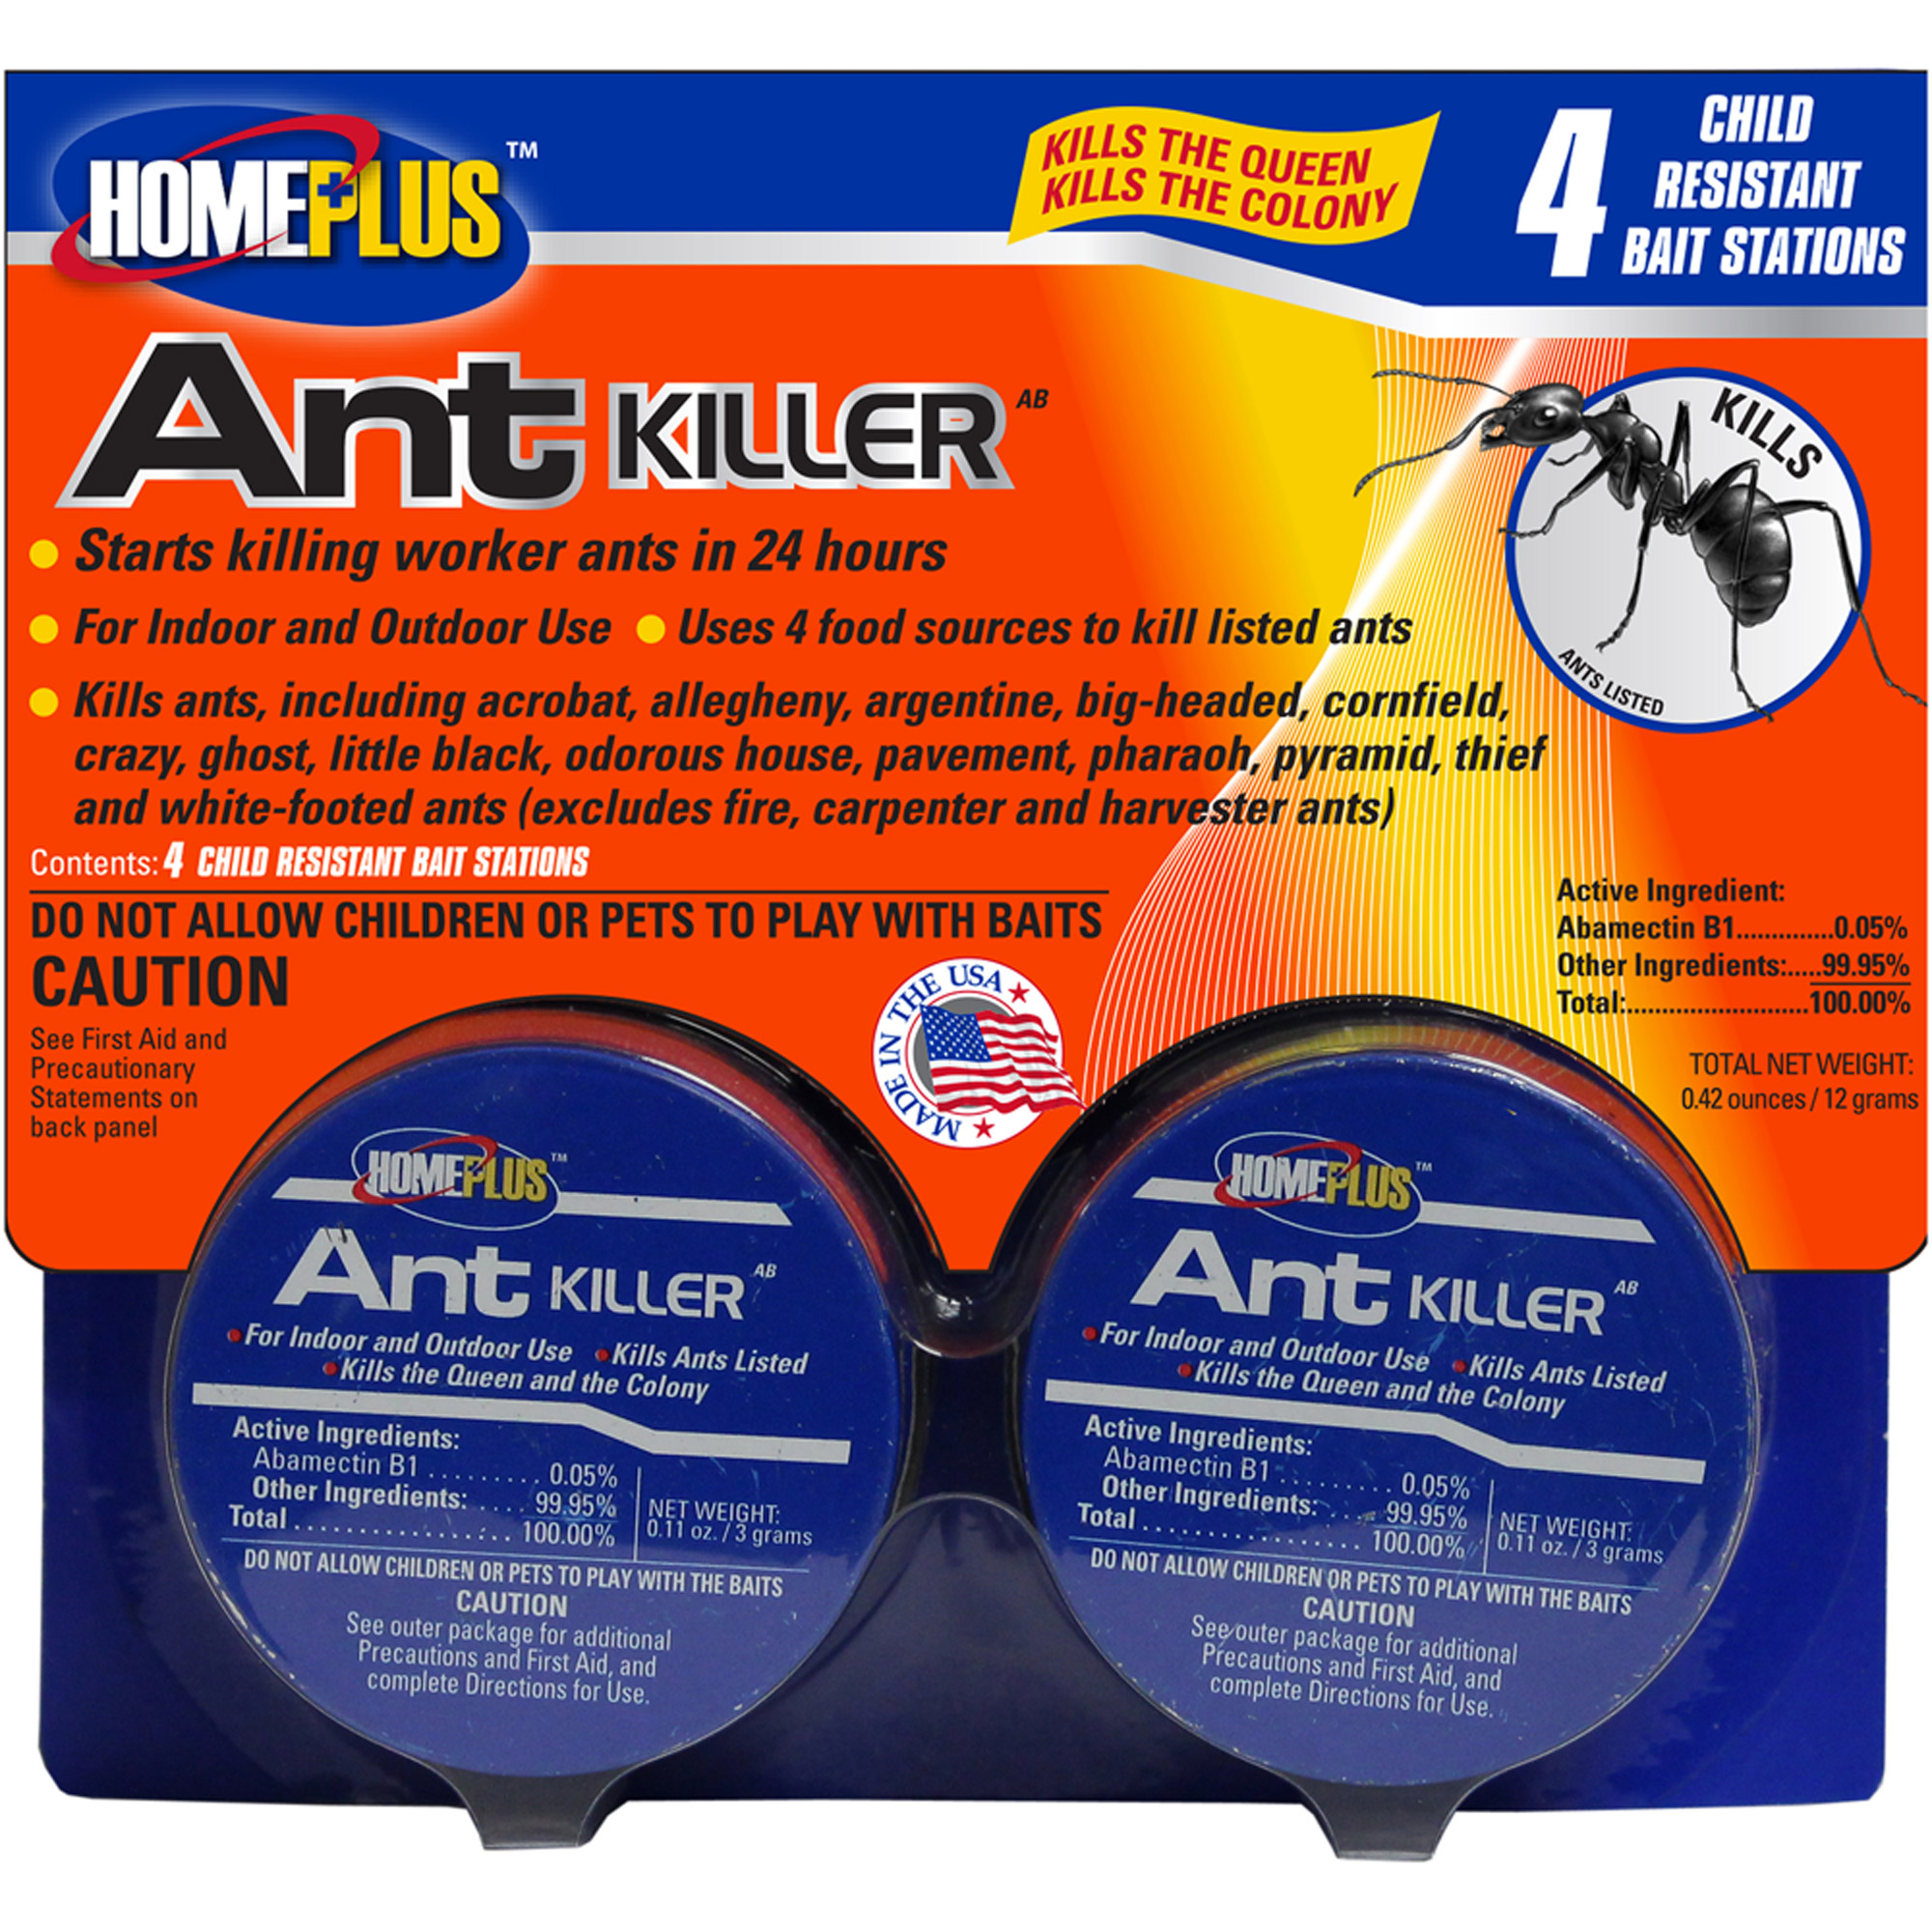 HomePlus Ant Killer Child-Resistant Bait Stations, 4 count